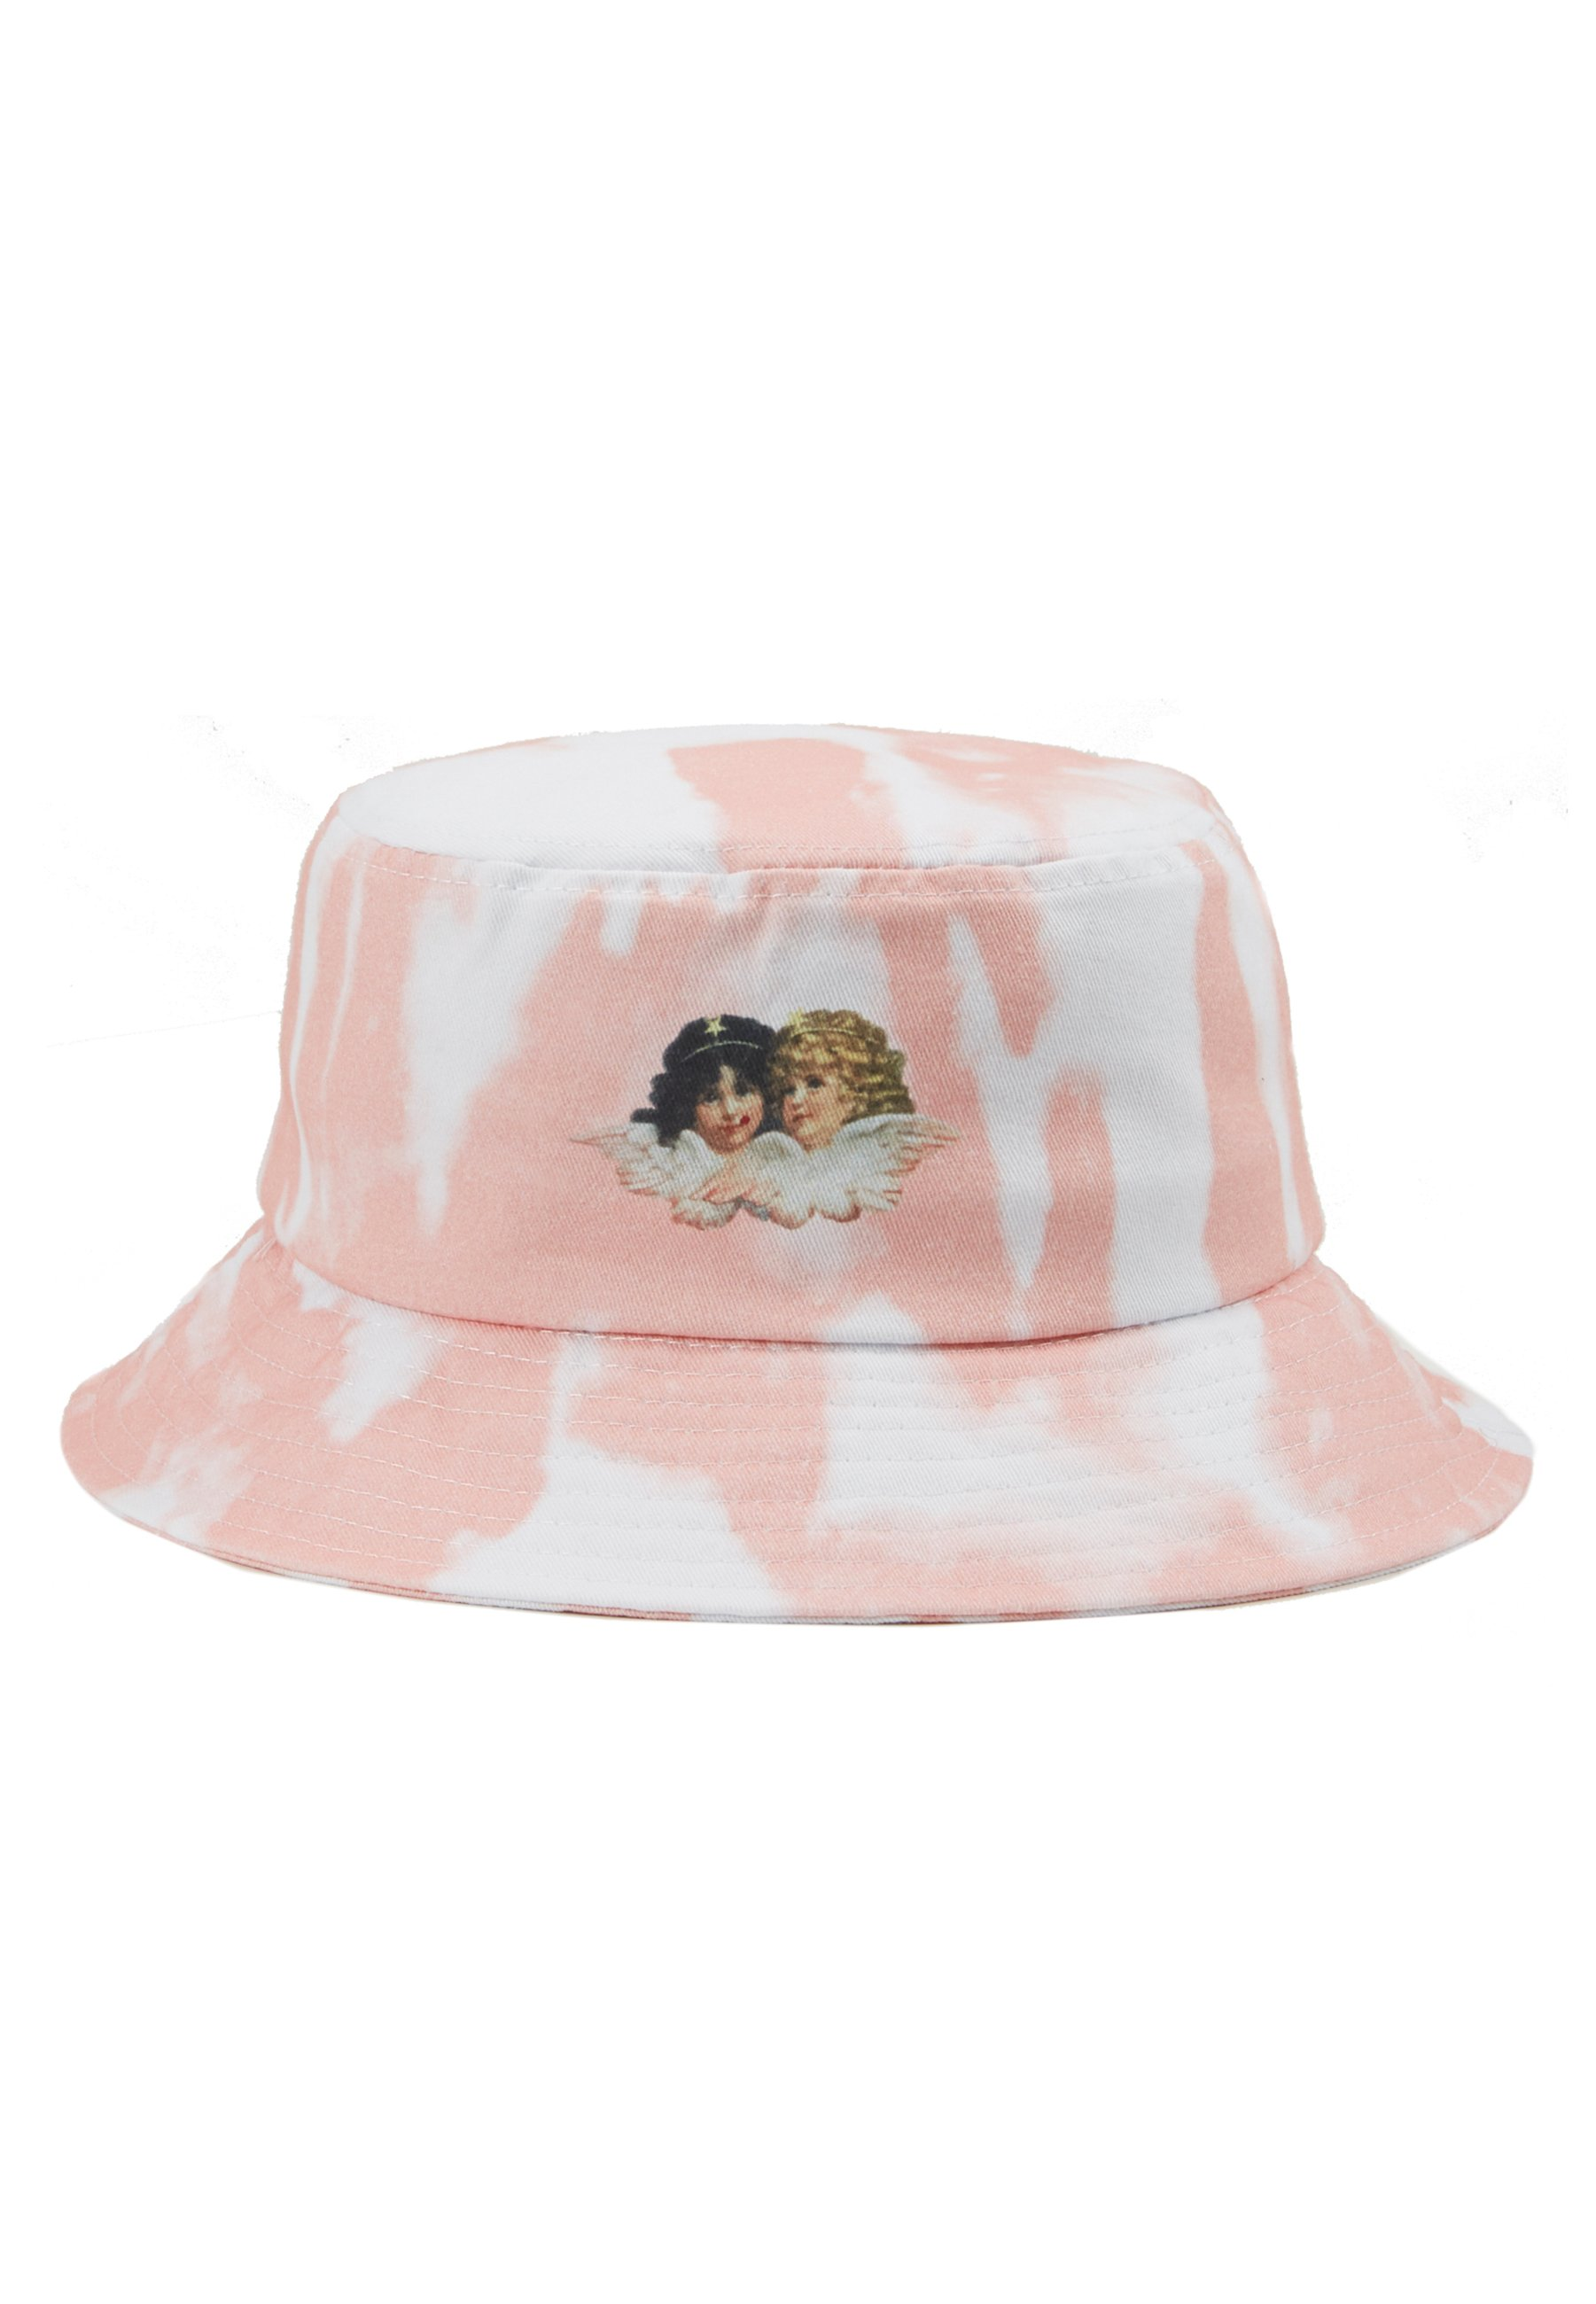 Fiorucci Tie Dye Bucket Hat Hat Pink Light Pink Zalando Co Uk